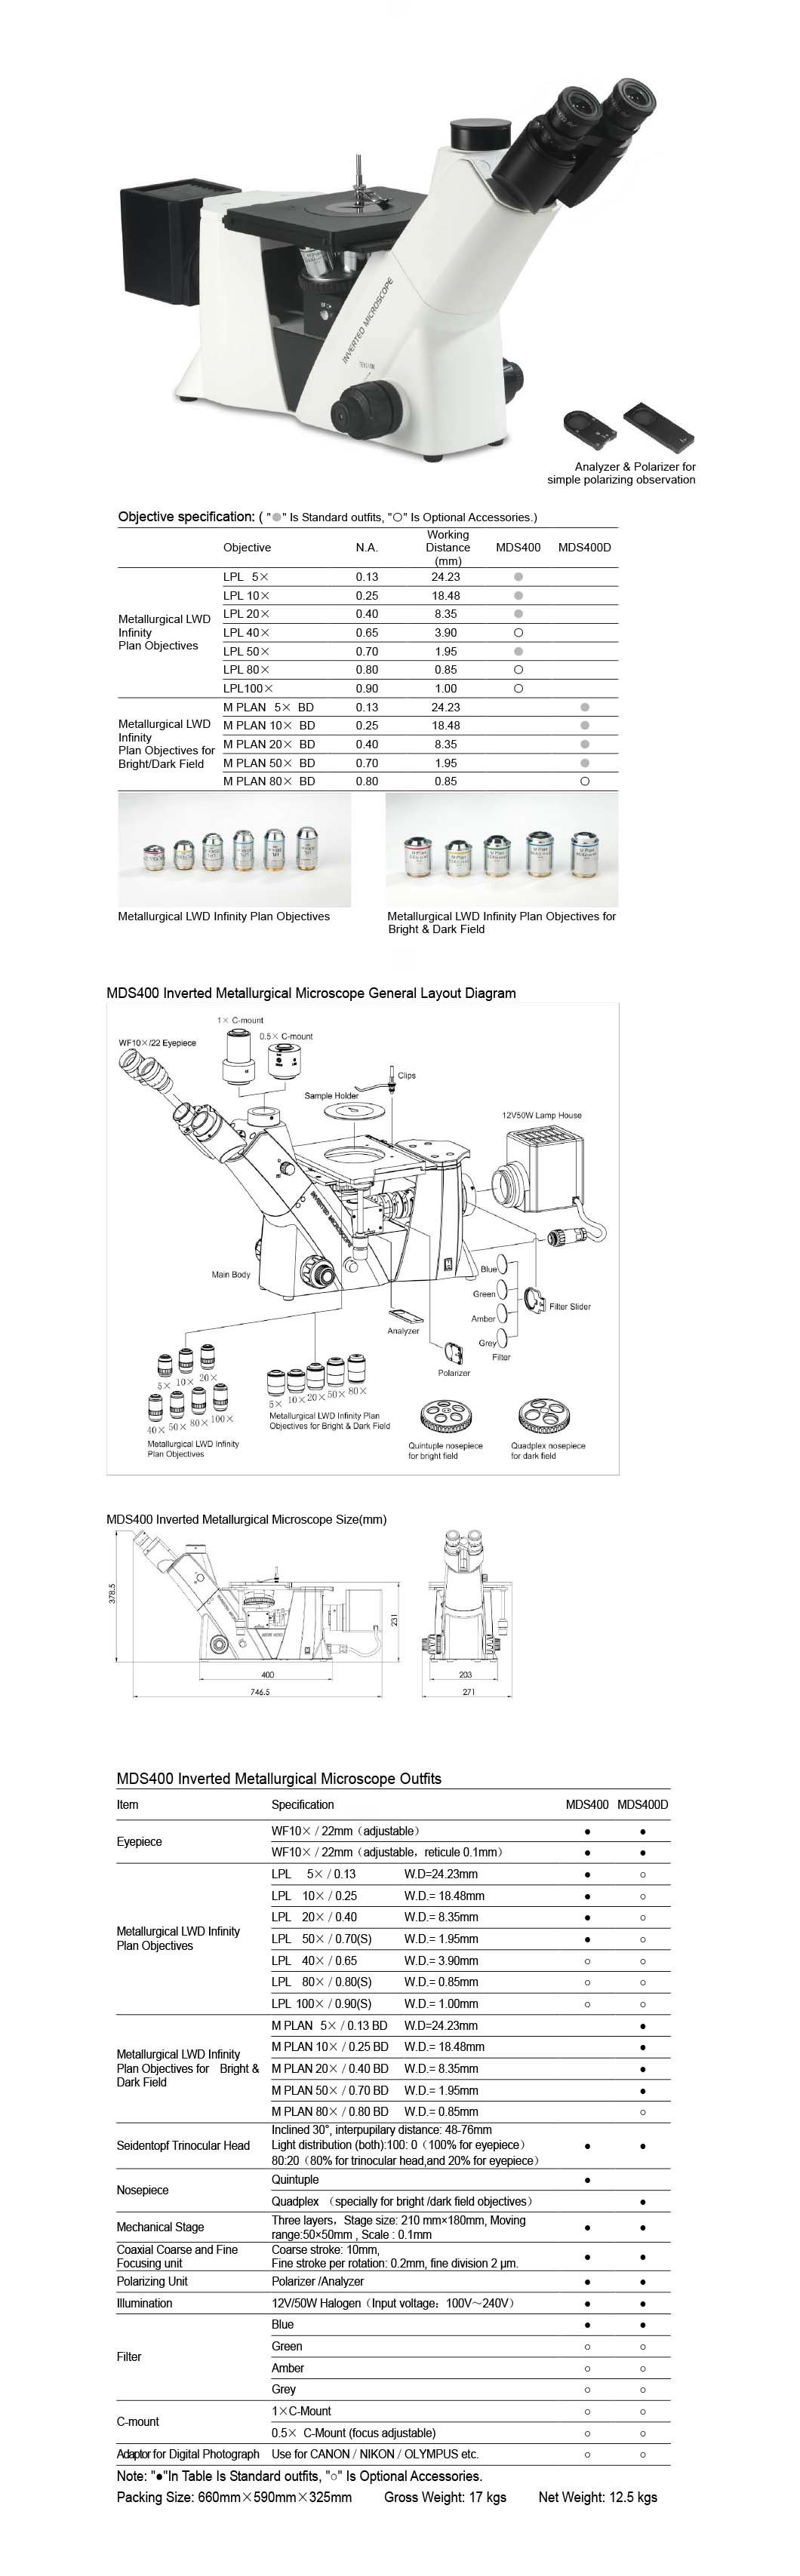 Inverted Digital Metallurgical Microscope for Optical Instrument